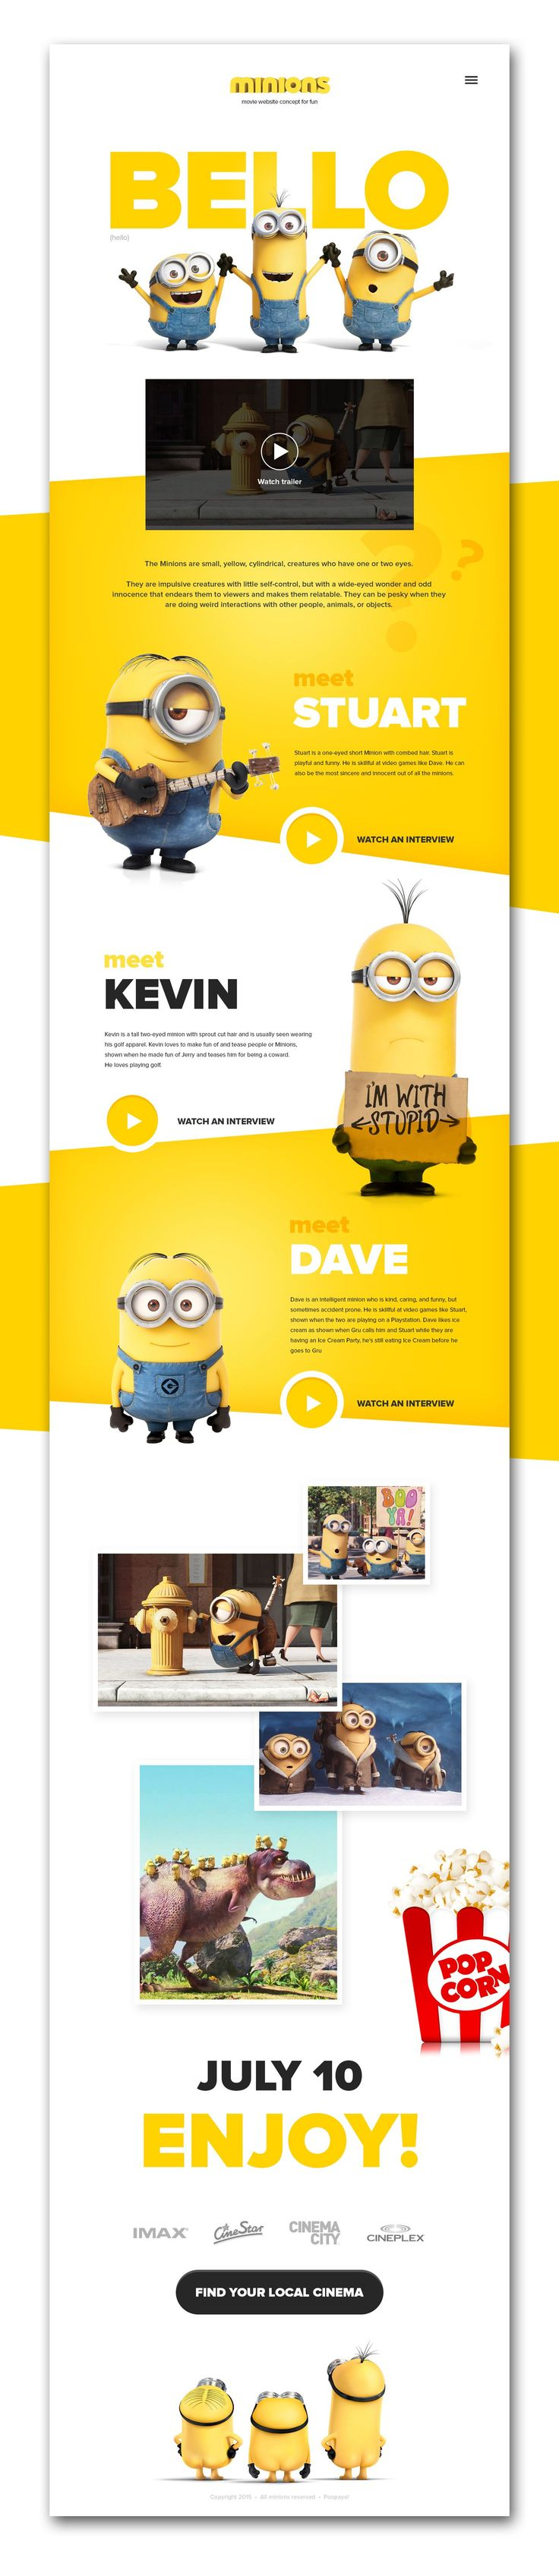 Minions homepage || Weekly web design Inspiration for everyone! Introducing Moire Studios a thriving website and graphic design studio. Feel Free to Follow us @moirestudiosjkt to see more remarkable pins like this. Or visit our website www.moirestudiosjkt.com to learn more about us. #WebDesign #WebsiteInspiration #WebDesignInspiration ||